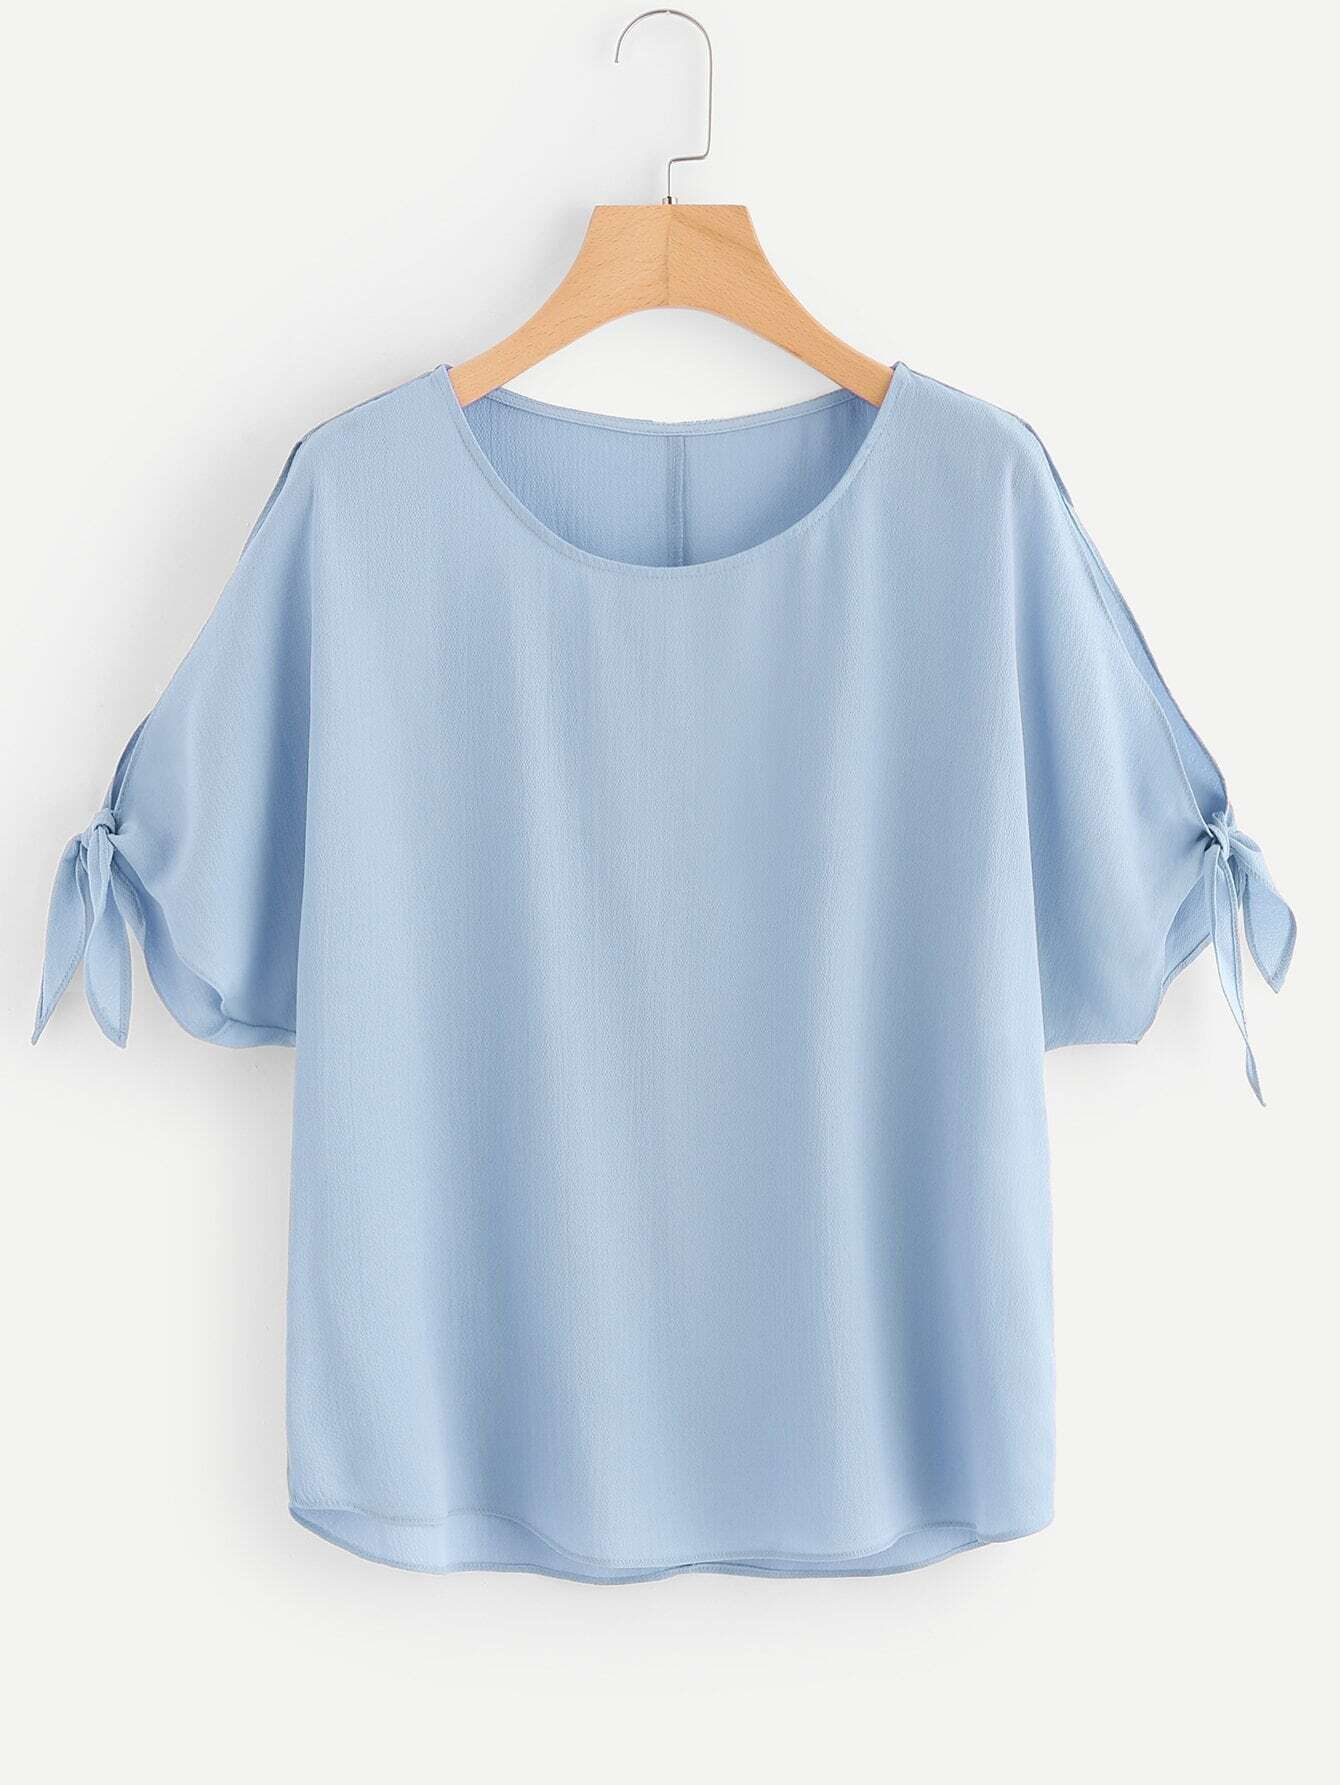 Split Sleeves With Knot Detail Blouse knot front hollow detail blouse